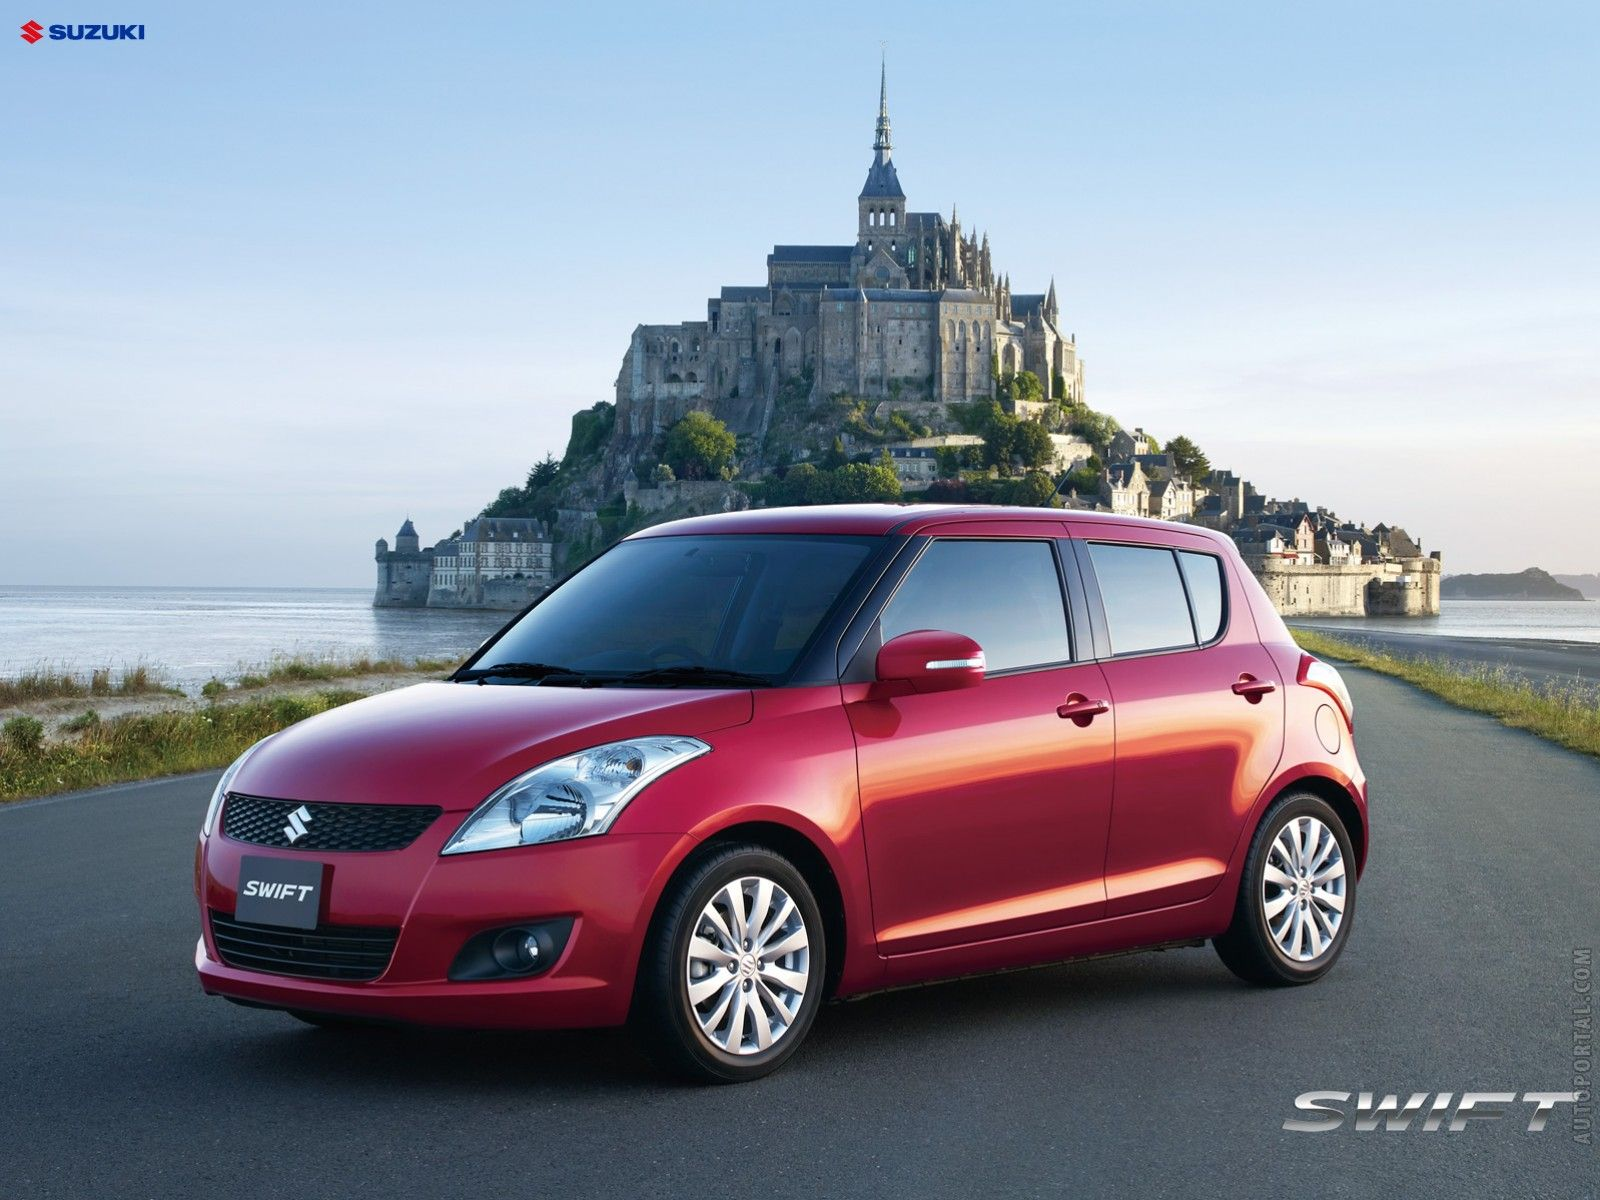 Maruti suzuki launched the swift hatchback in india in the year the finely designed hatchback became very popular in no time and it literally replaced the